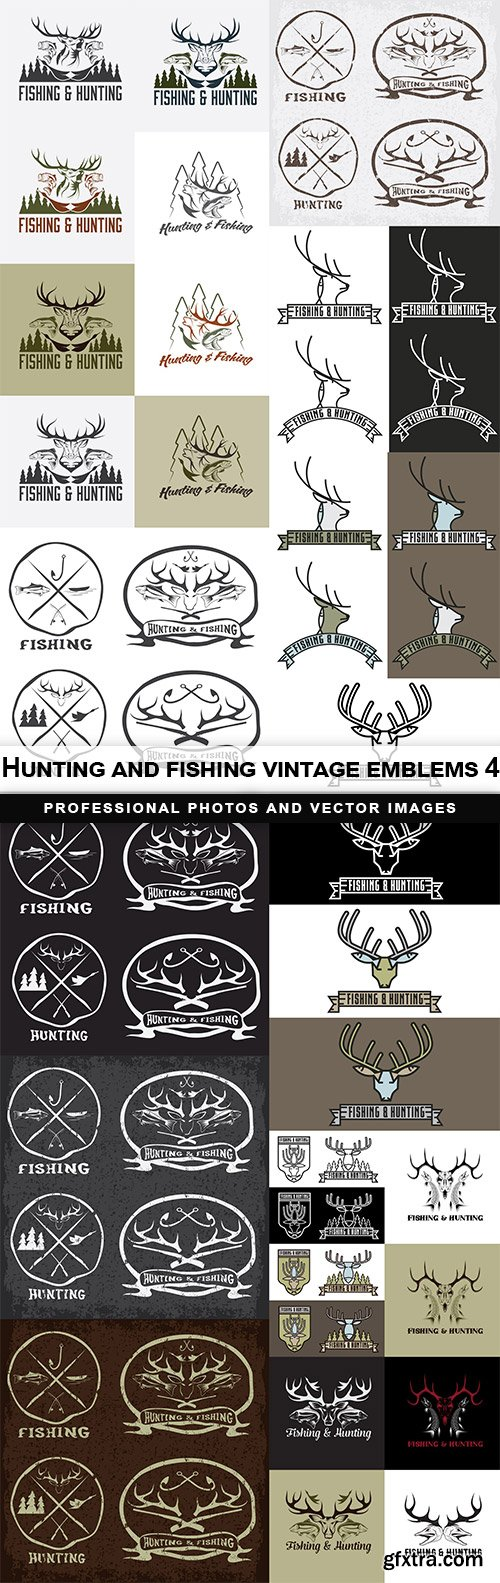 Hunting and fishing vintage emblems 4